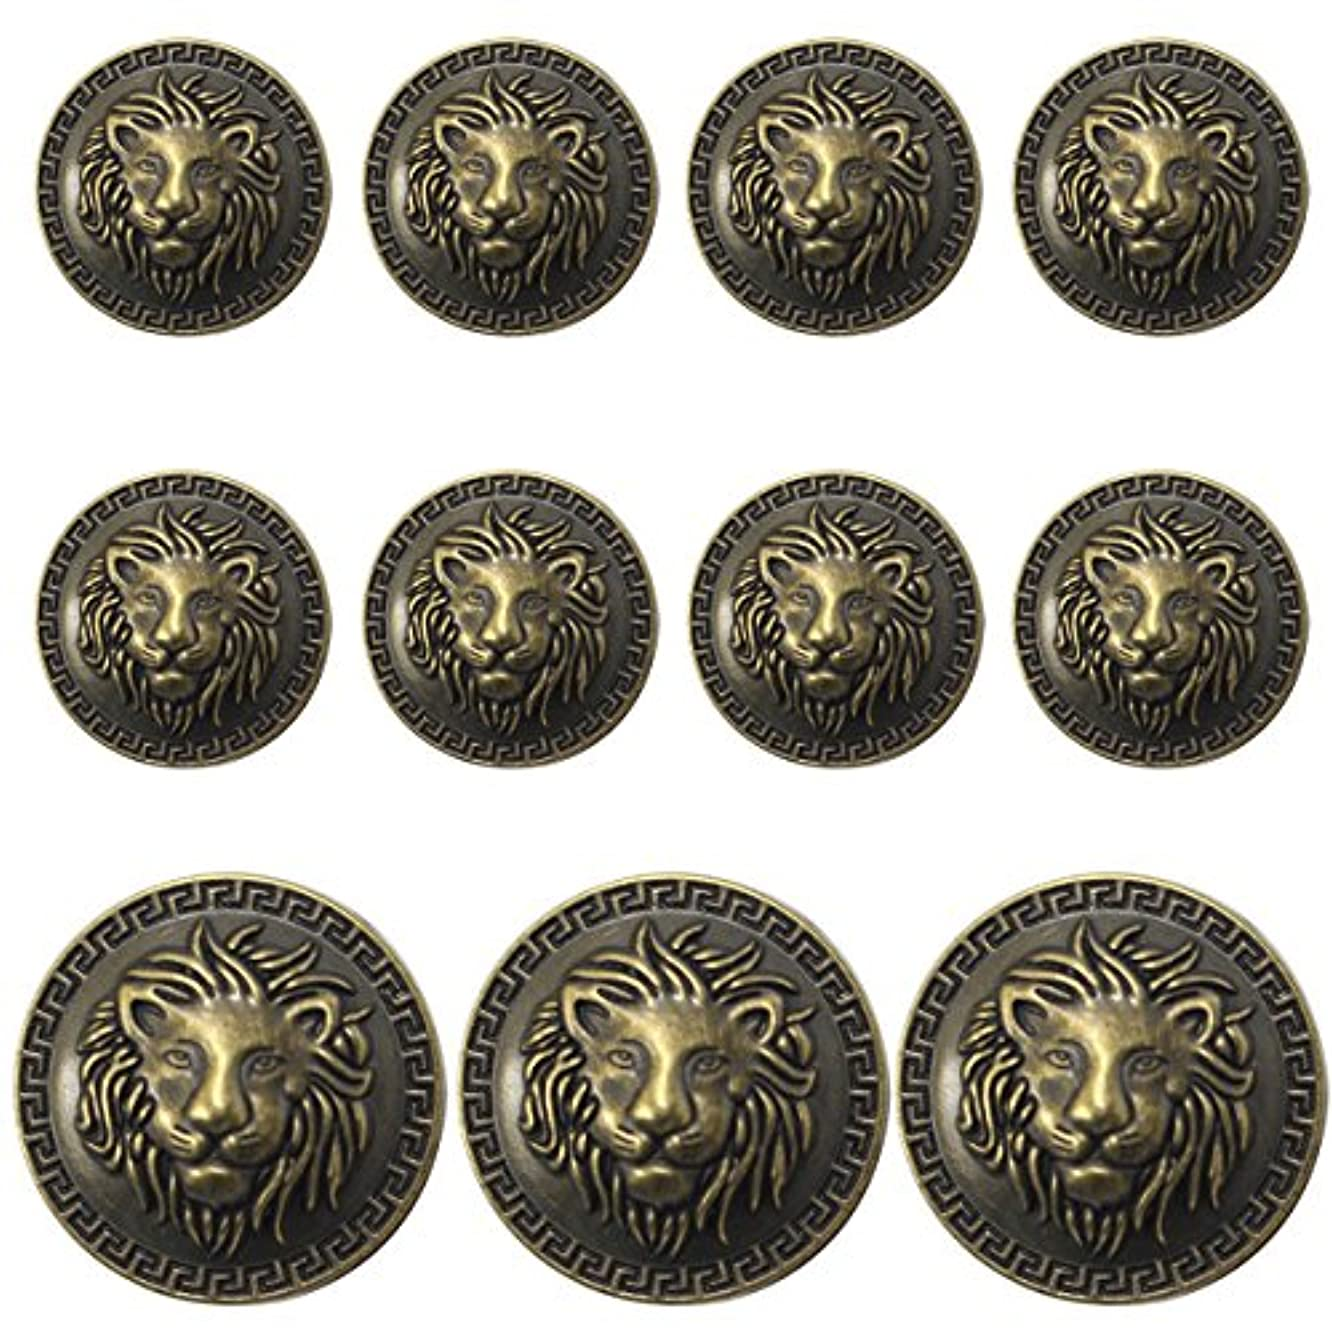 11 Pieces Bronze Vintage Antique Metal Blazer Button Set - 3D Lion Head - for Blazer, Suits, Sport Coat, Uniform, Jacket